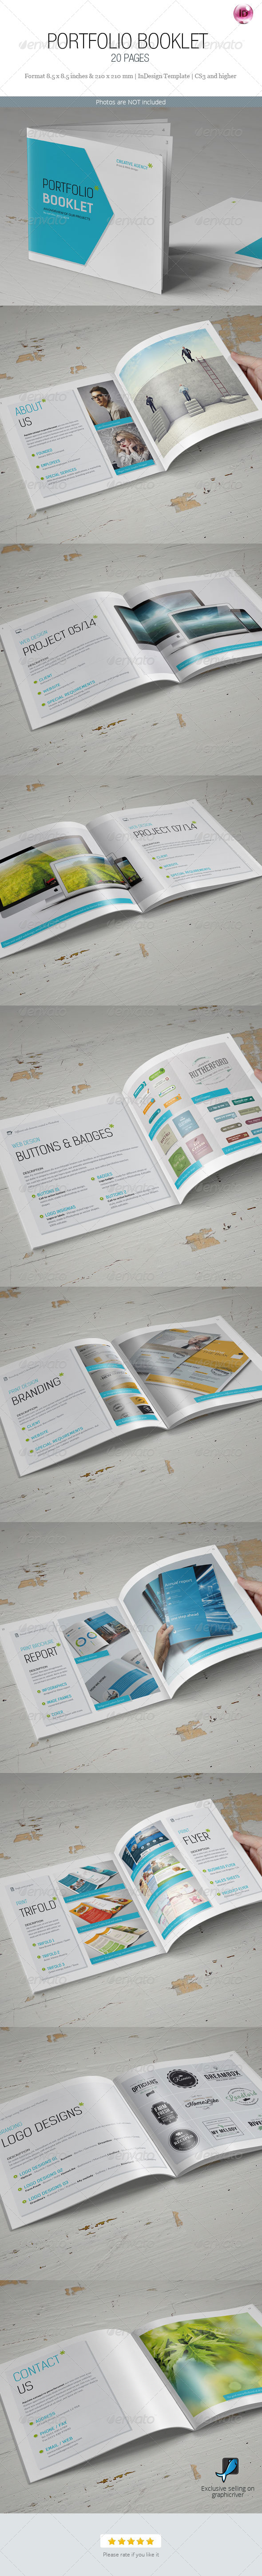 GraphicRiver Portfolio Booklet 7573685